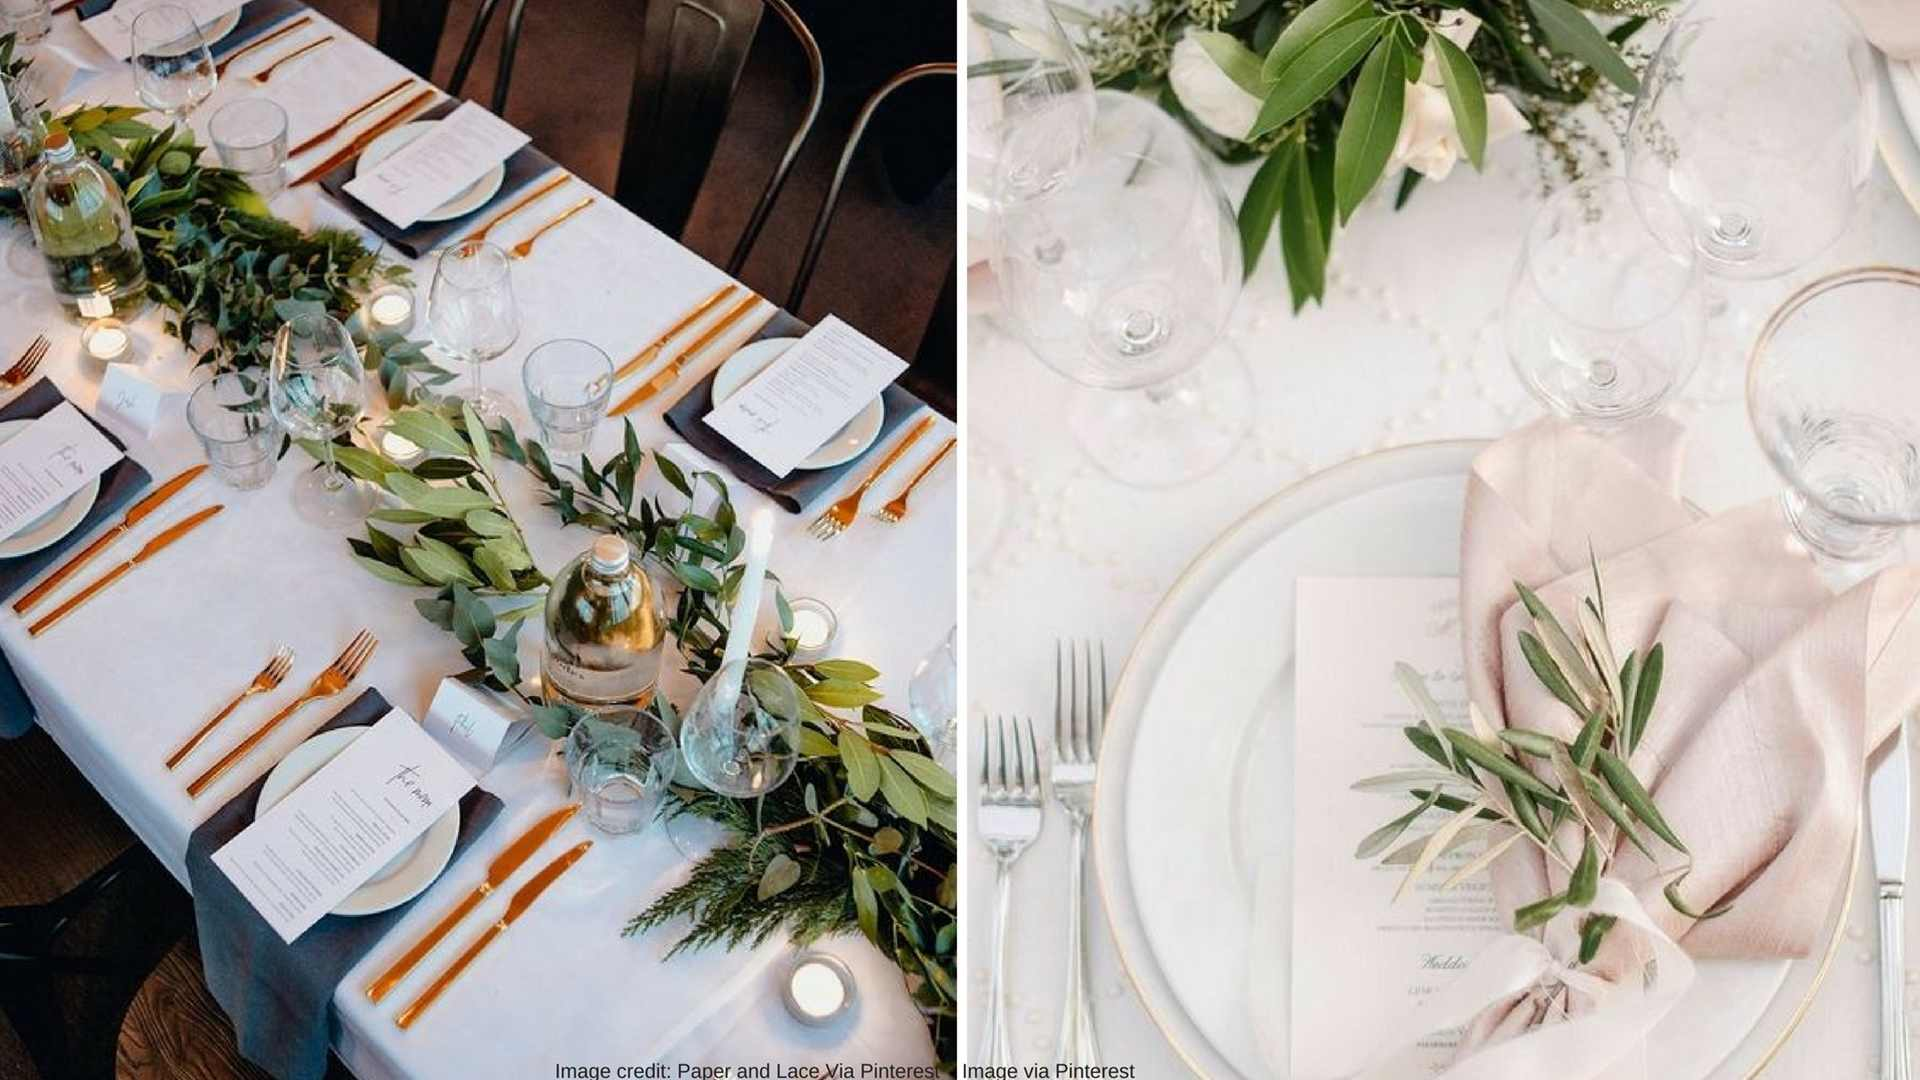 The difference is subtle, but without the salt and pepper, bread plate, and that extra glass your guests will have a bit more room